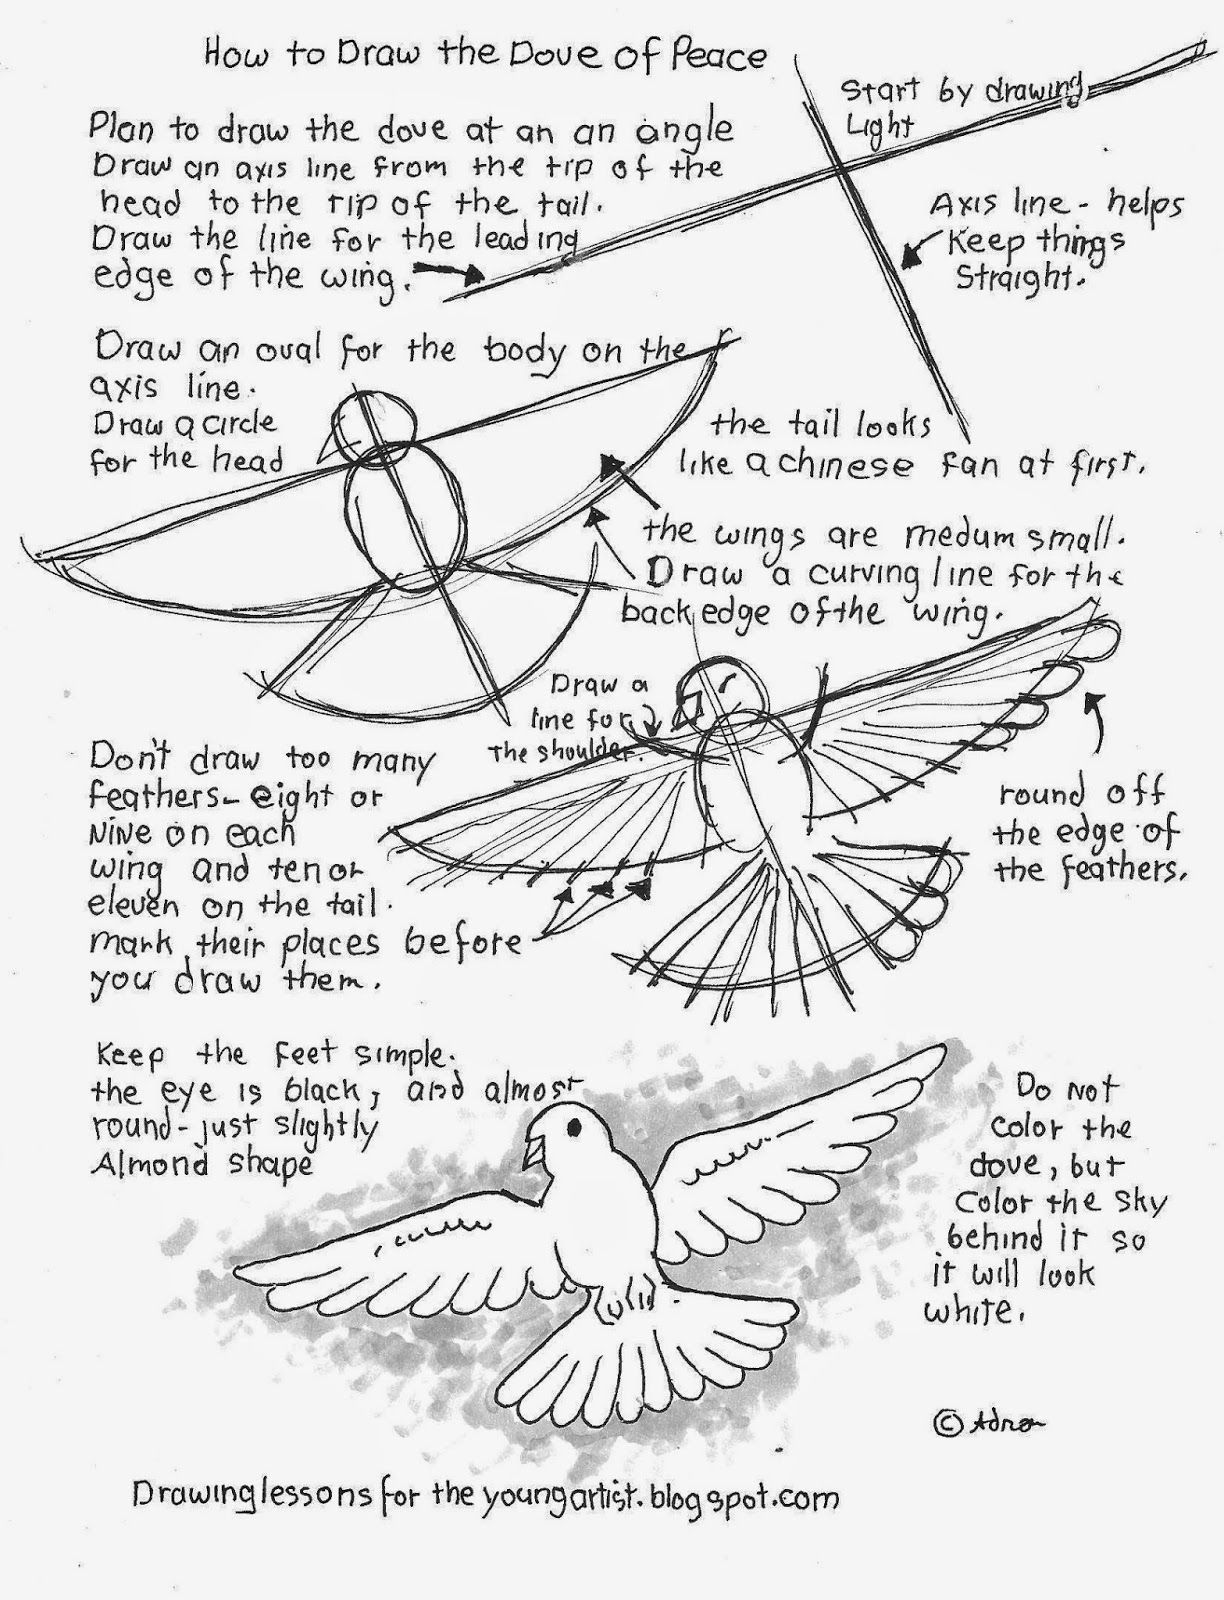 How To Draw The Dove Of Peace Free Printable Worksheet